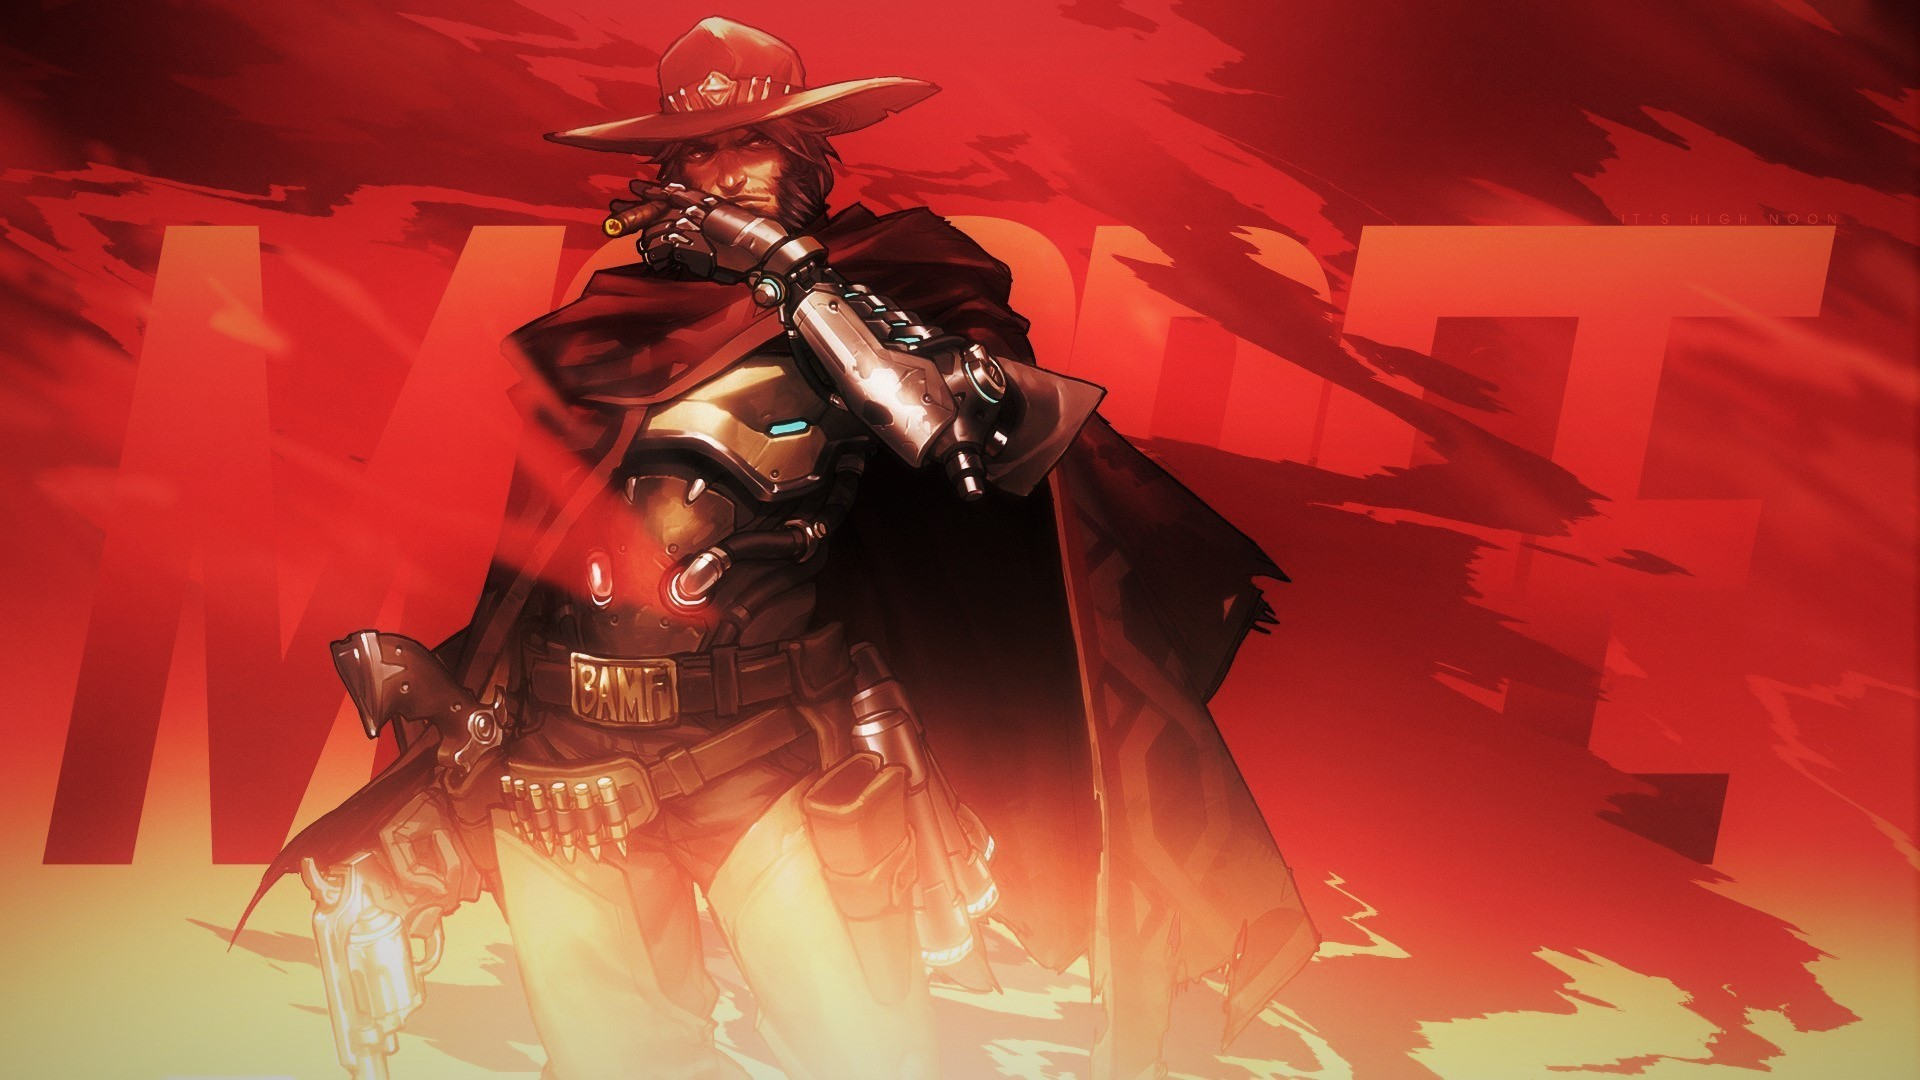 Res: 1920x1080, mccree overwatch pc gaming computer blizzard entertainment overwatch dark  red hat cowboy hats cowboy boots pistol cape wallpaper and background